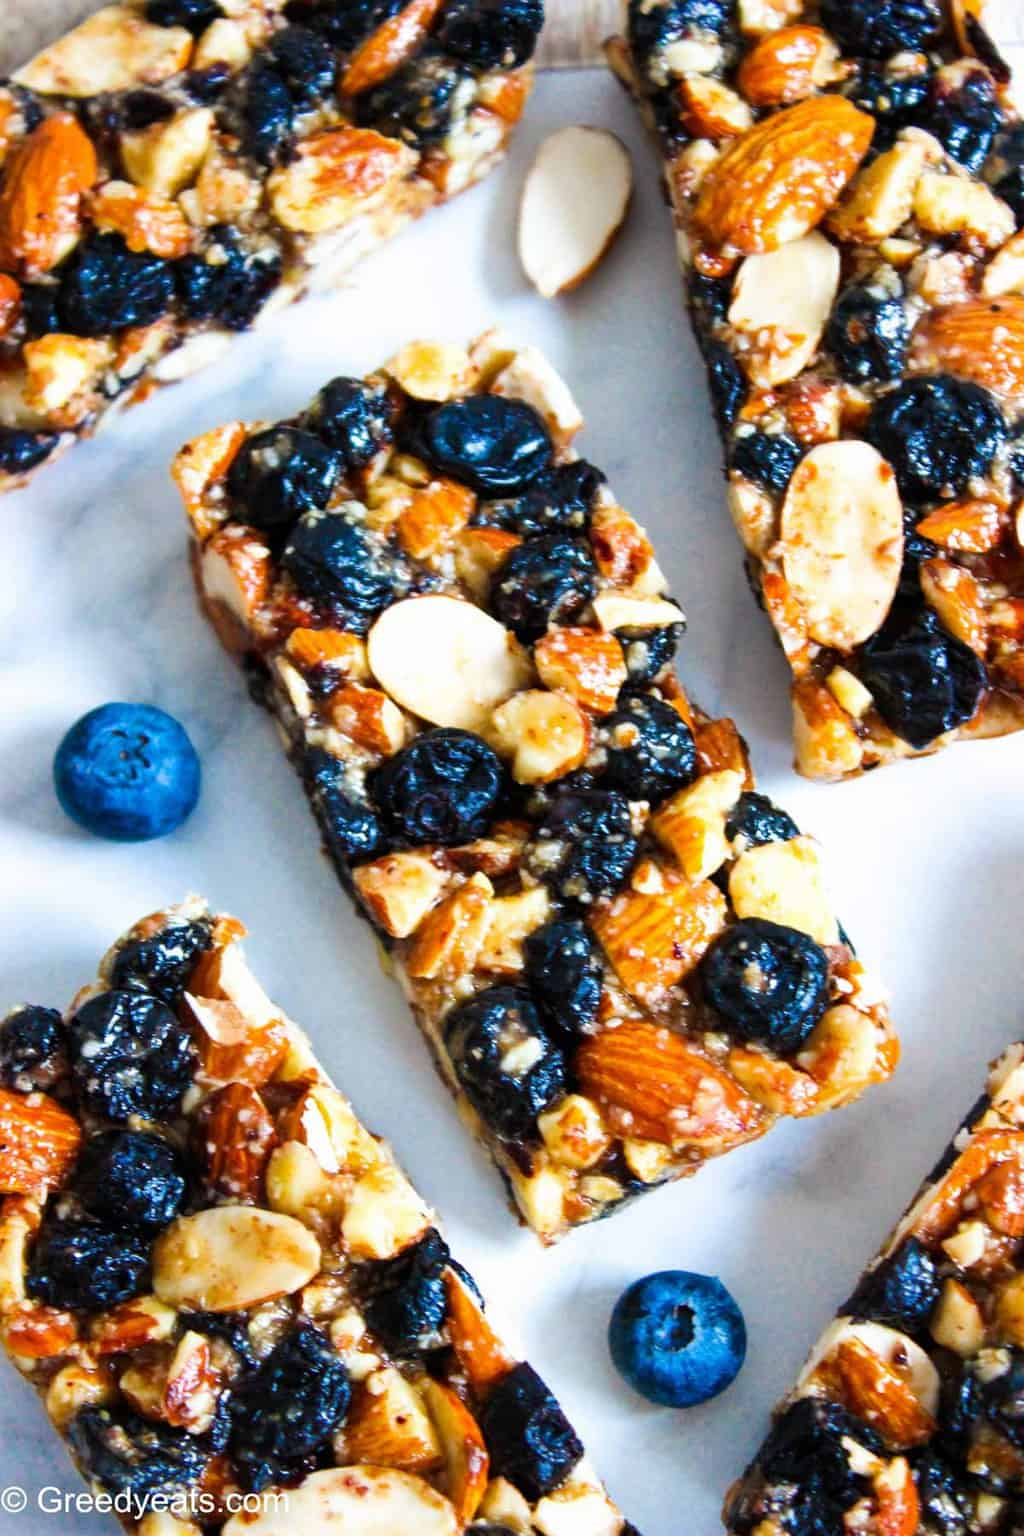 Chewy Almond Bars Recipe made with wholesome ingredients and packed with nutrients.